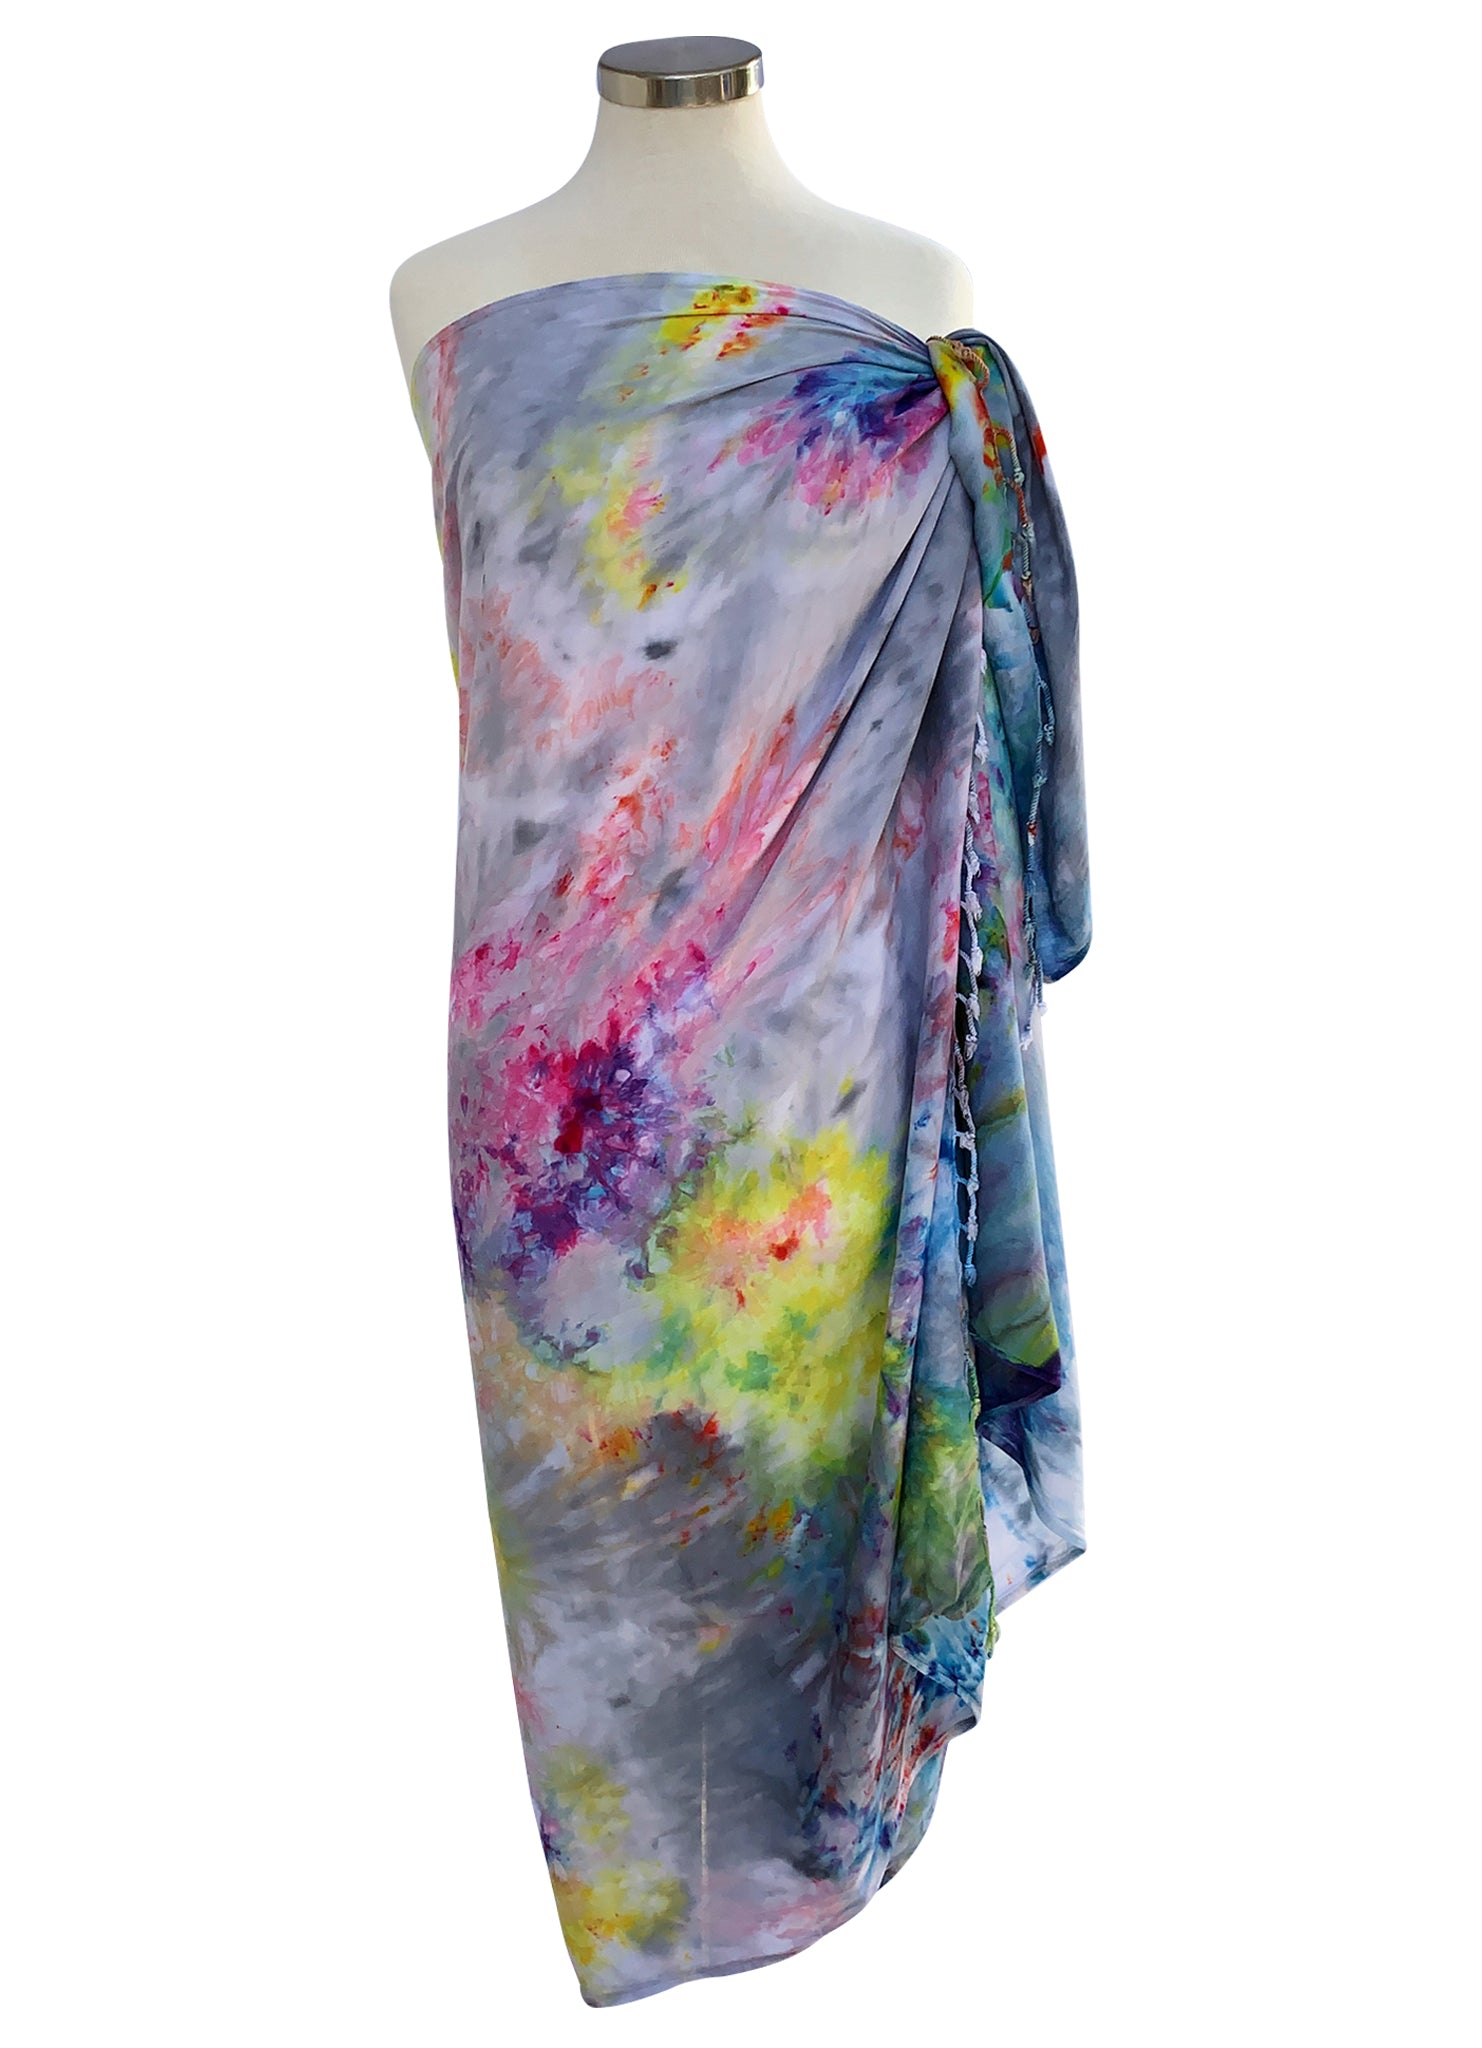 Blanket-Sarong Scarf in Candy Land - Blanket-Sarong Scarf - Dyetology